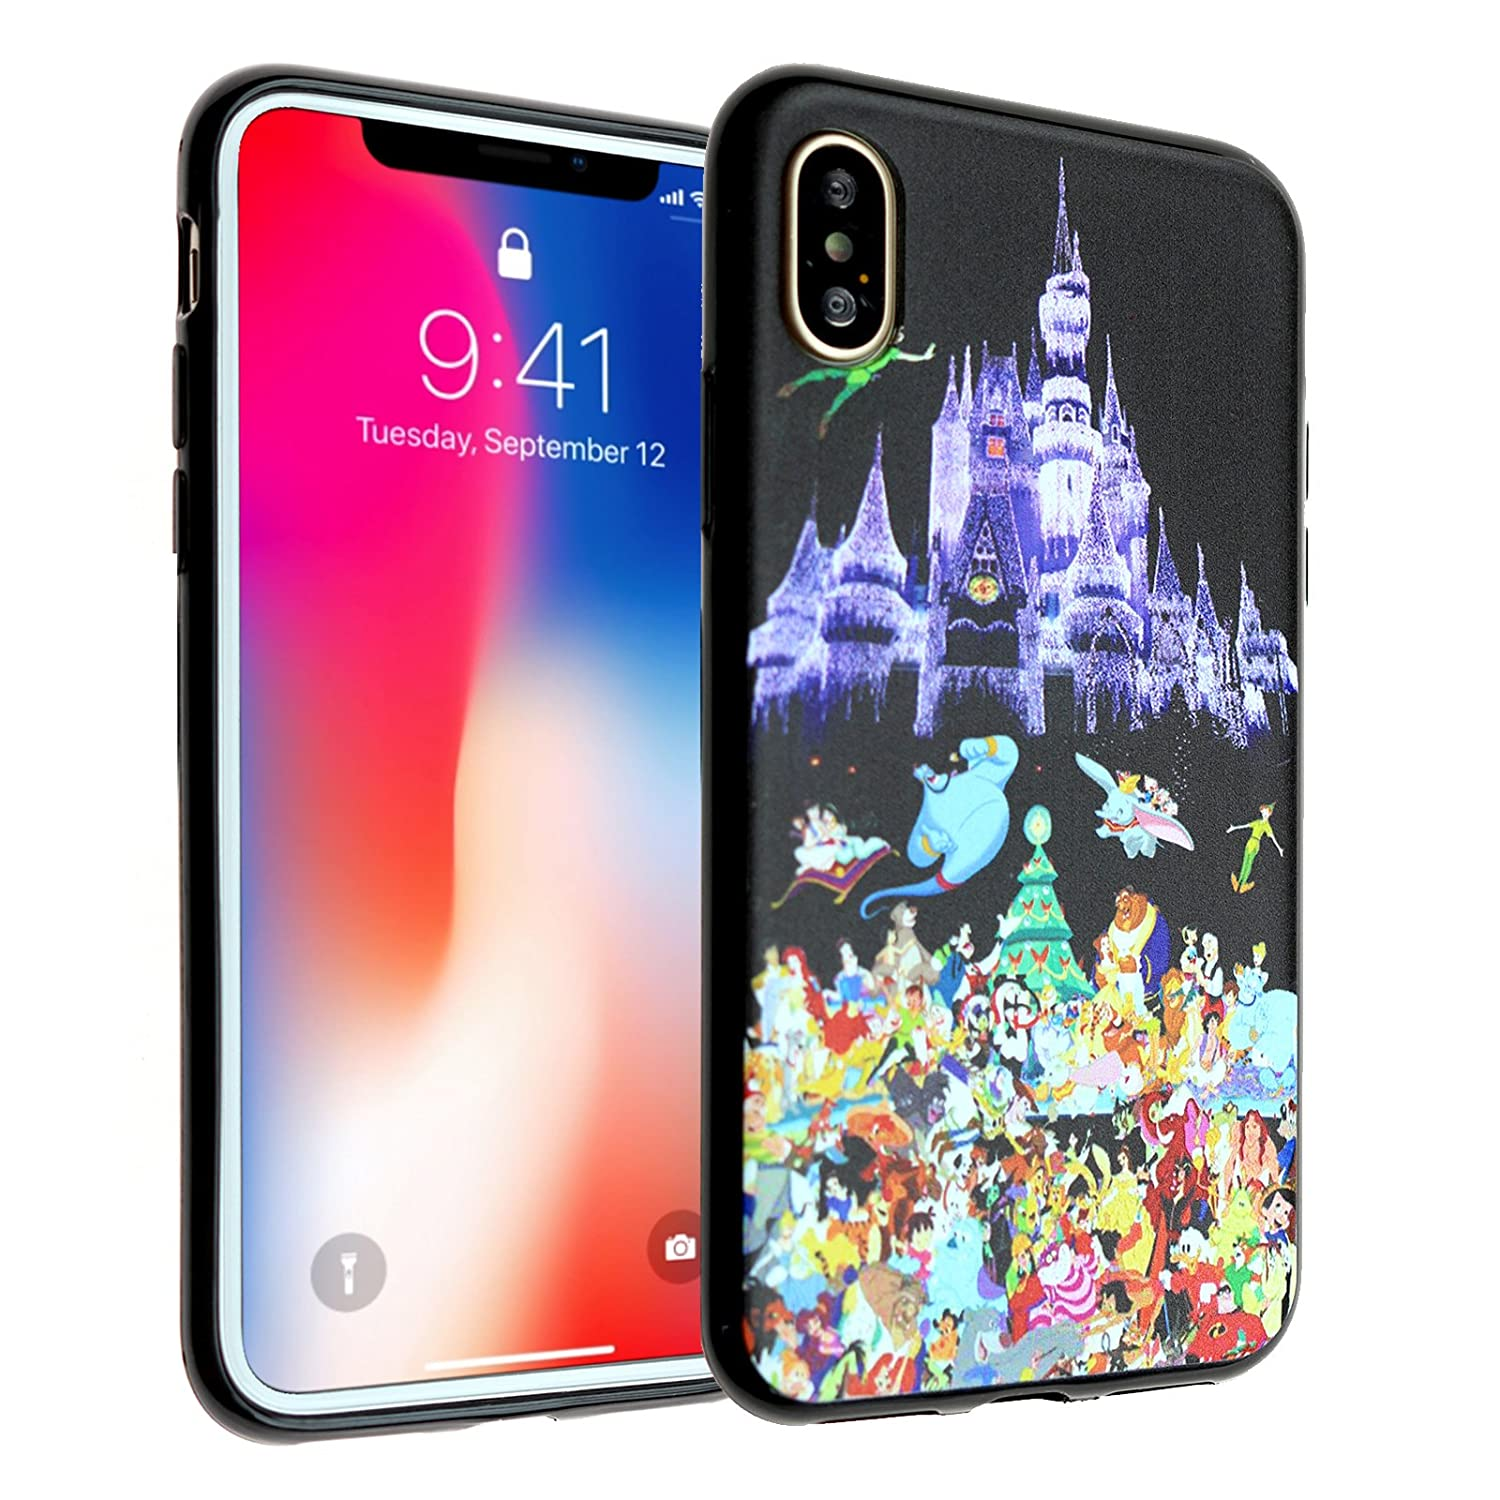 Boys' Shoes Family World Watercolors Mickey Minnie Mouse Clear Soft Tpu Silicone Cover Case For Iphone Xs Max Xr X 6 6s 7 8 Plus To Rank First Among Similar Products